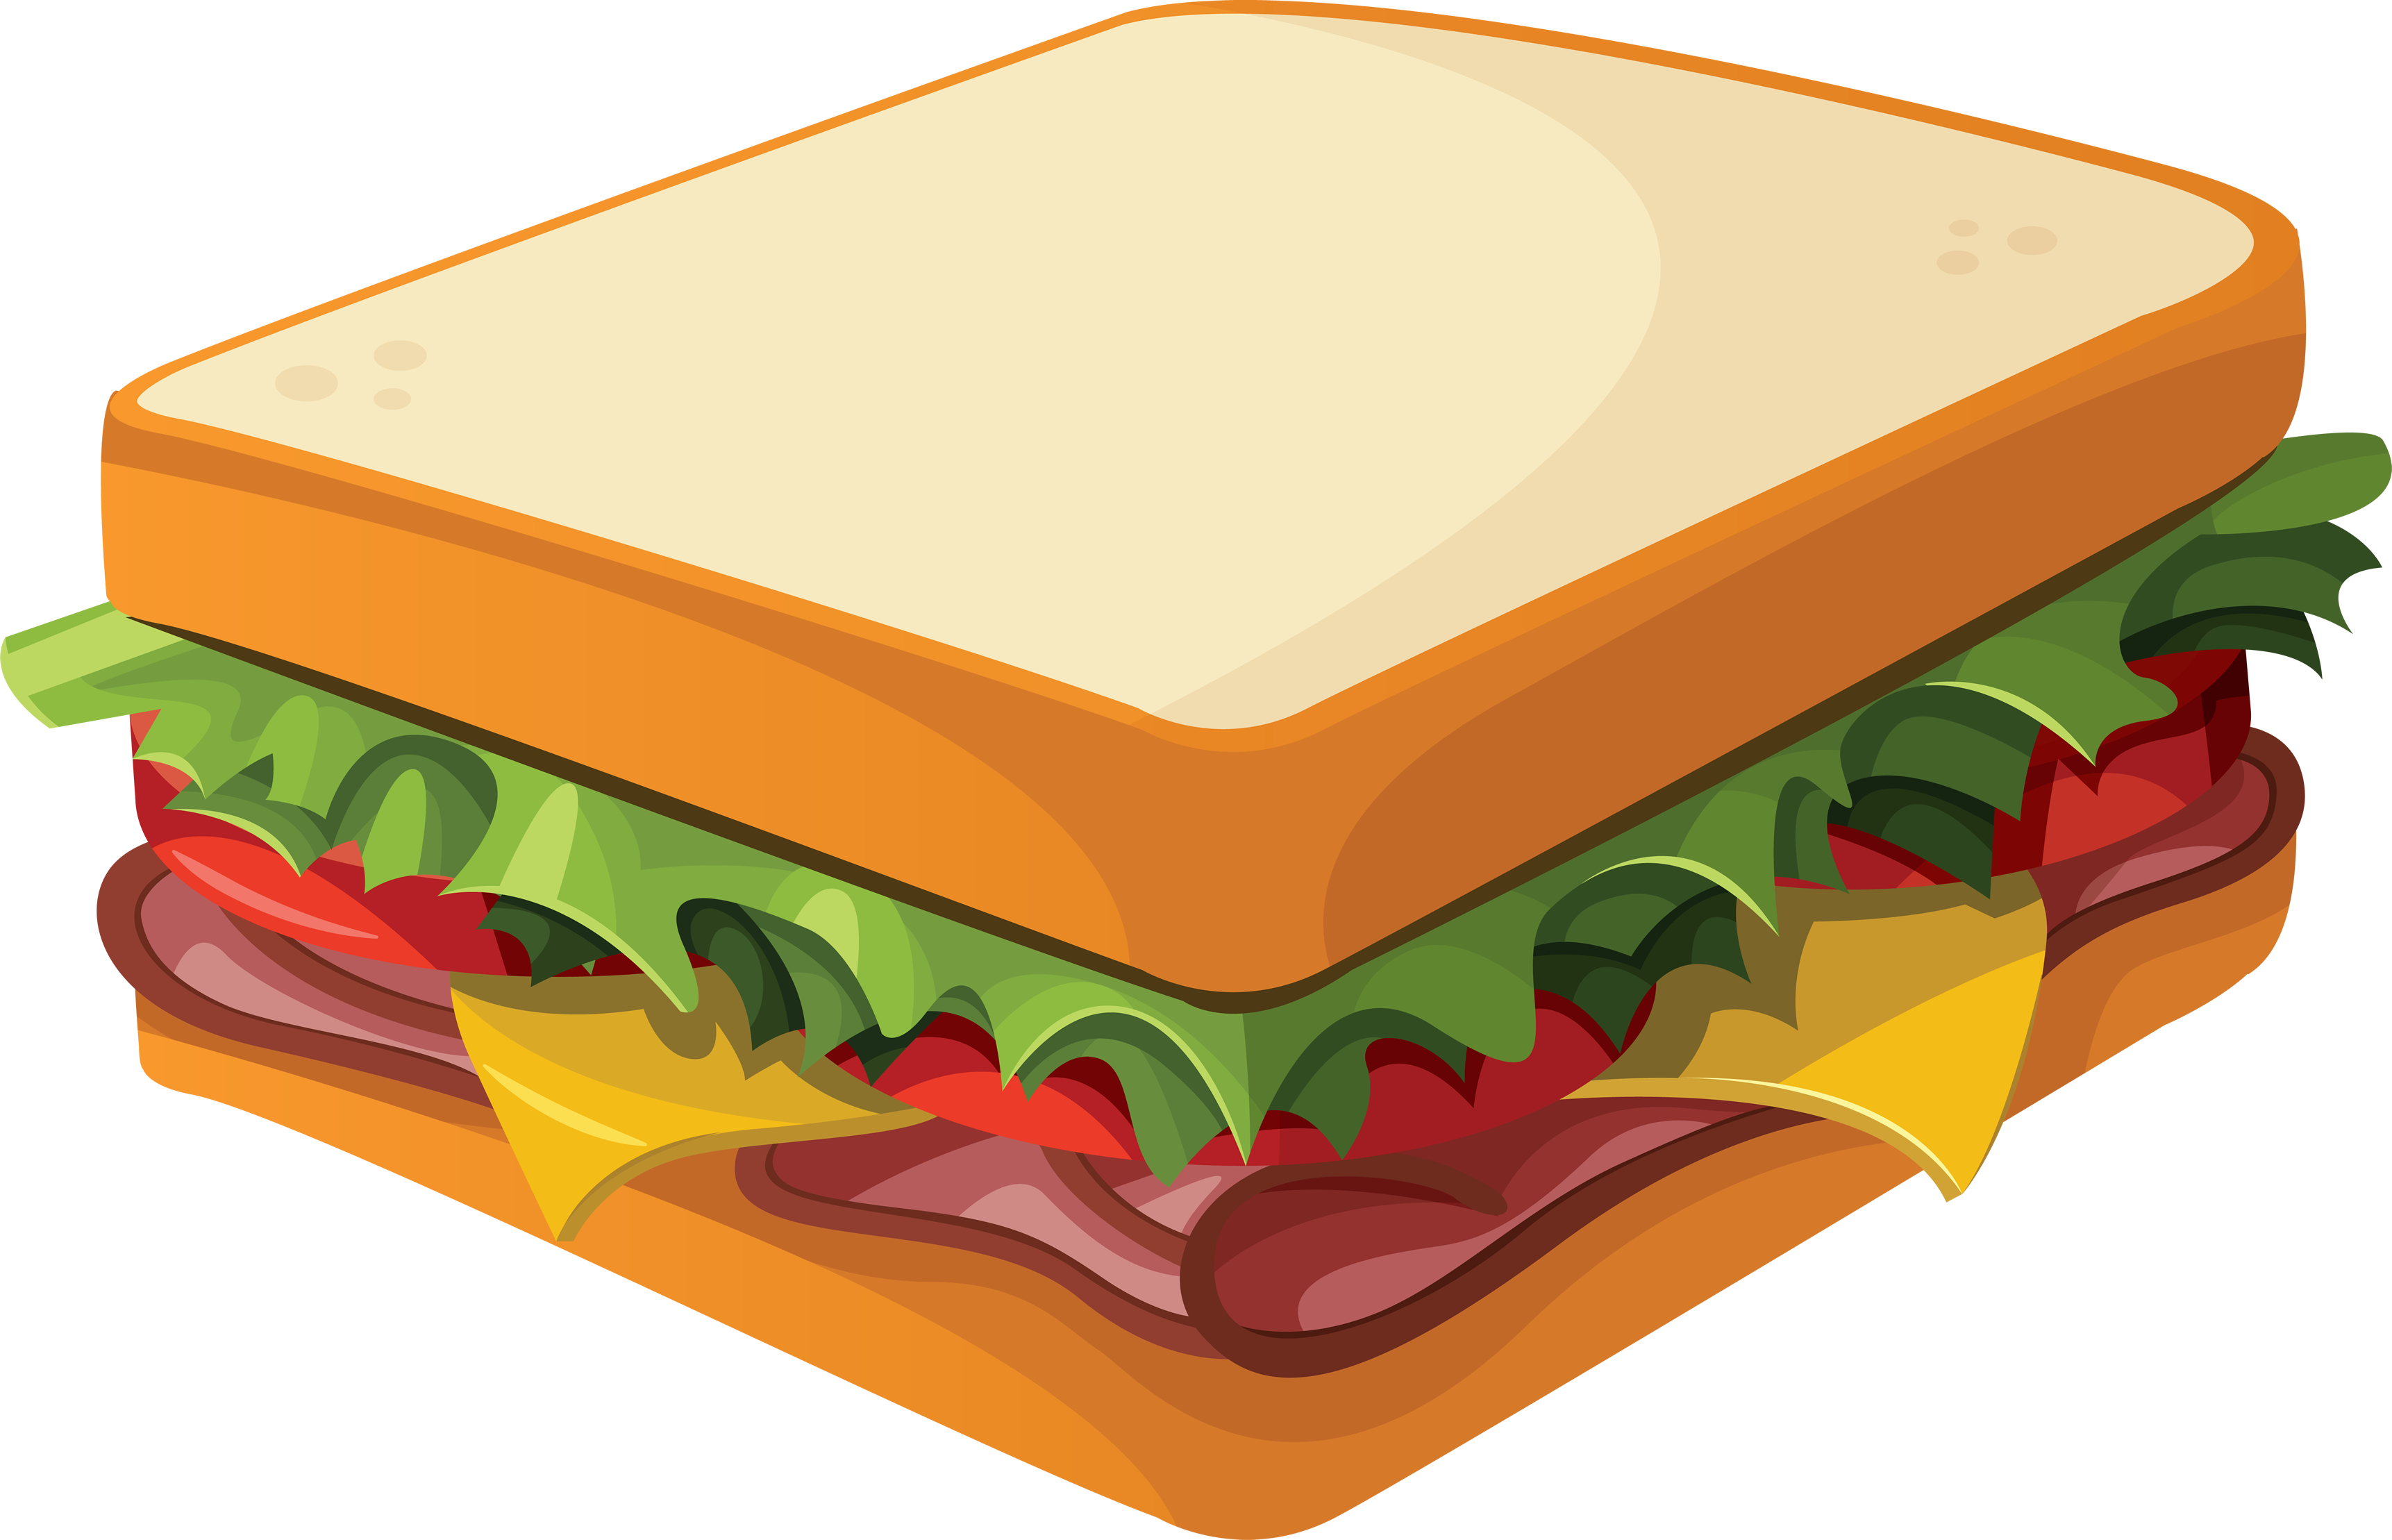 Clipart chicken sandwhich. Image result for cheese